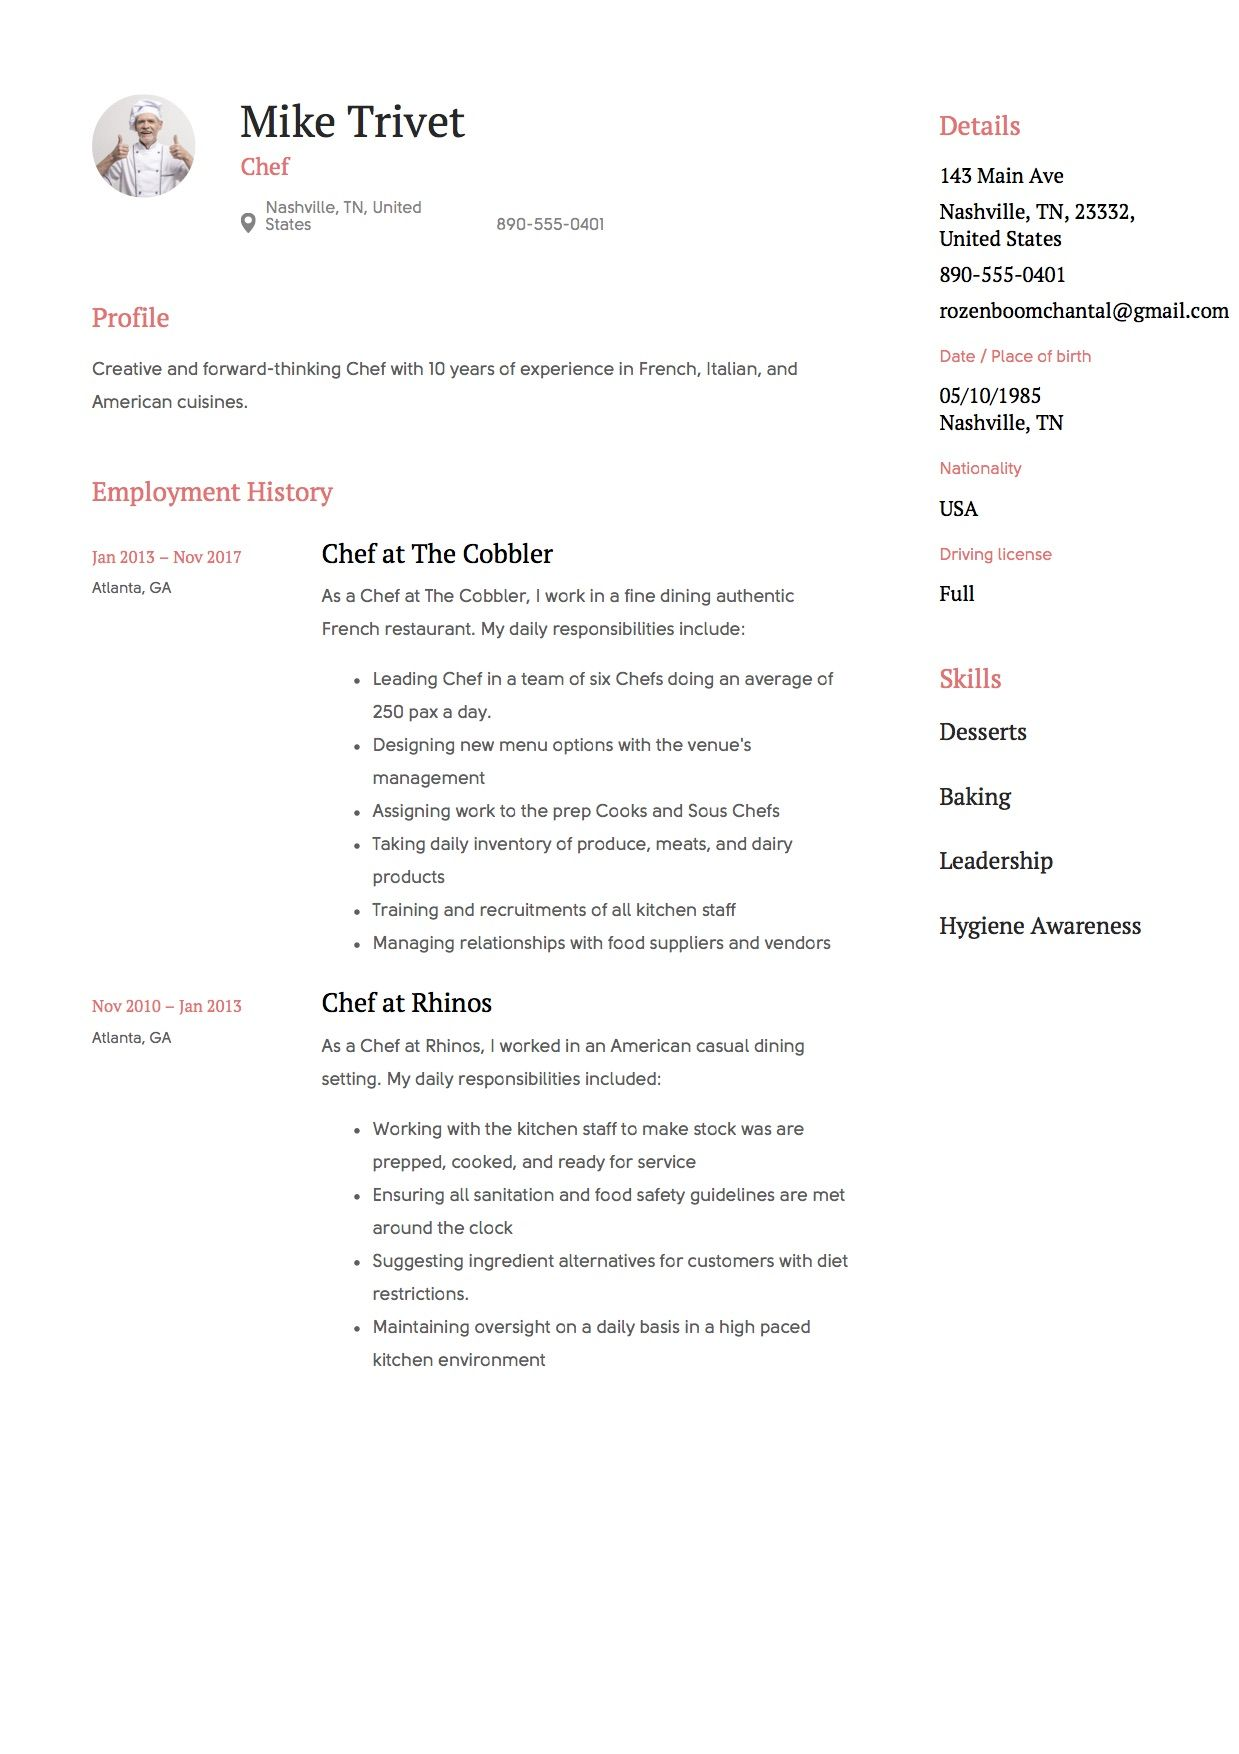 Chef Resume, template, design, tips, examples, free